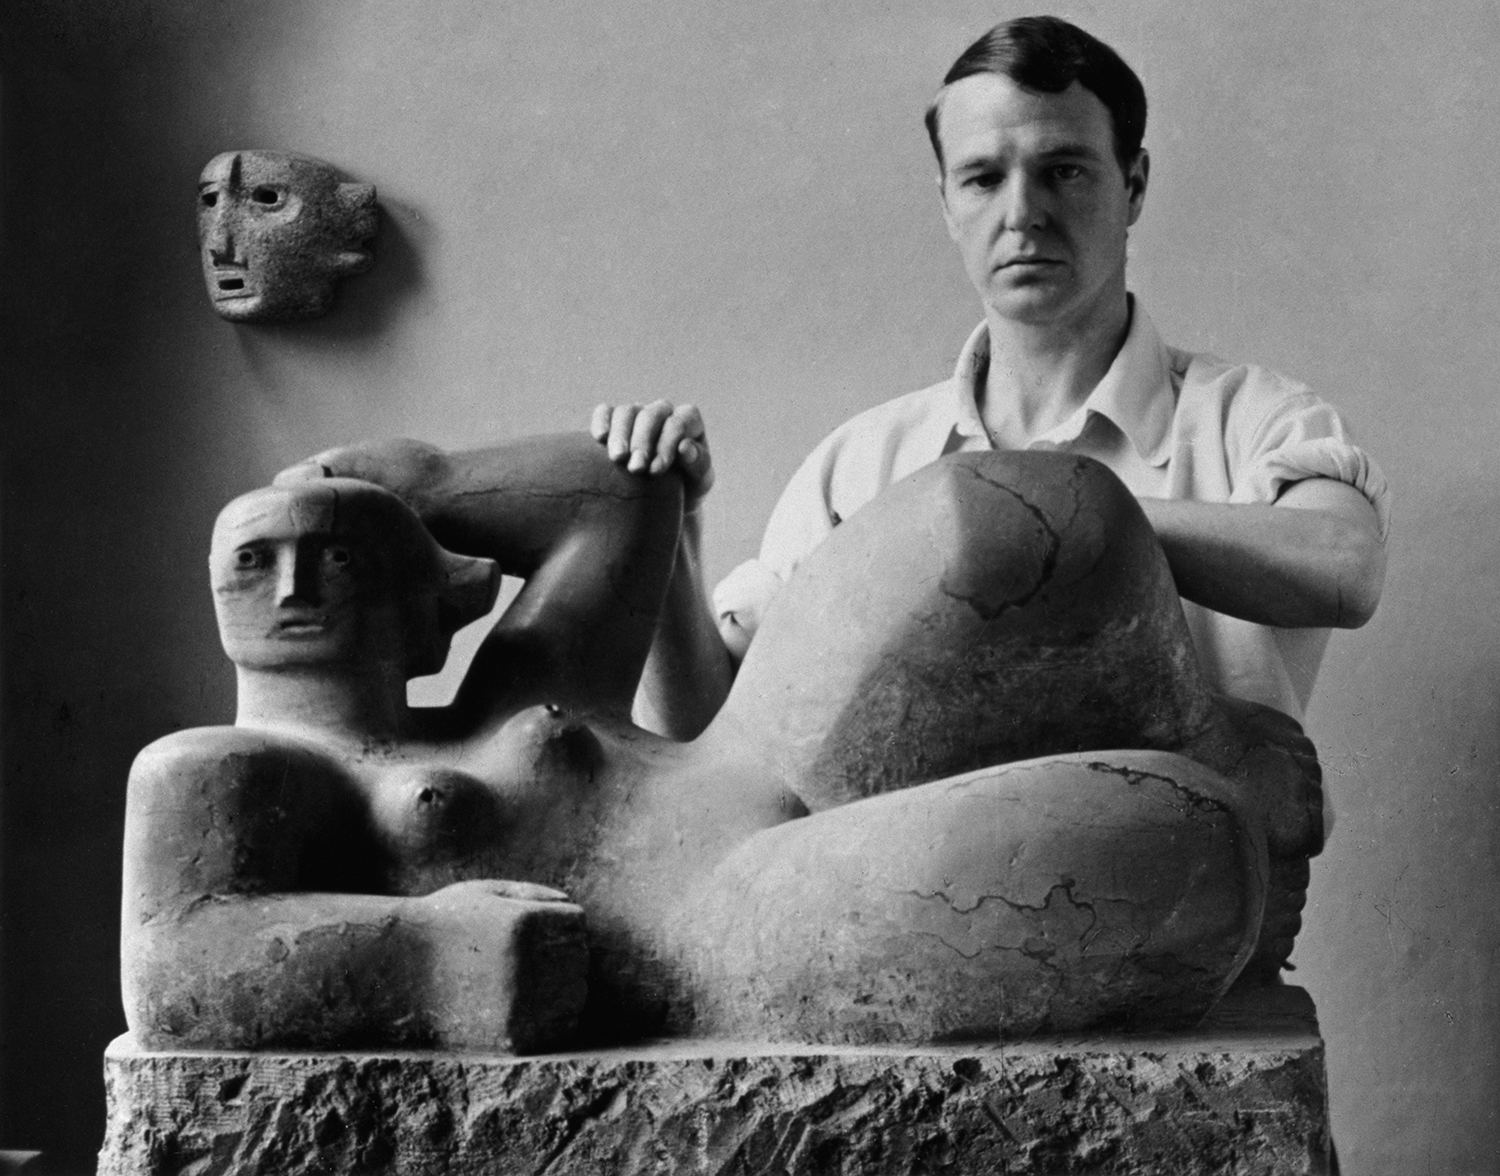 Henry Moore c.1929-30 with Reclining Figure 1929 (LH 59) and Mask 1930 (LH 77)